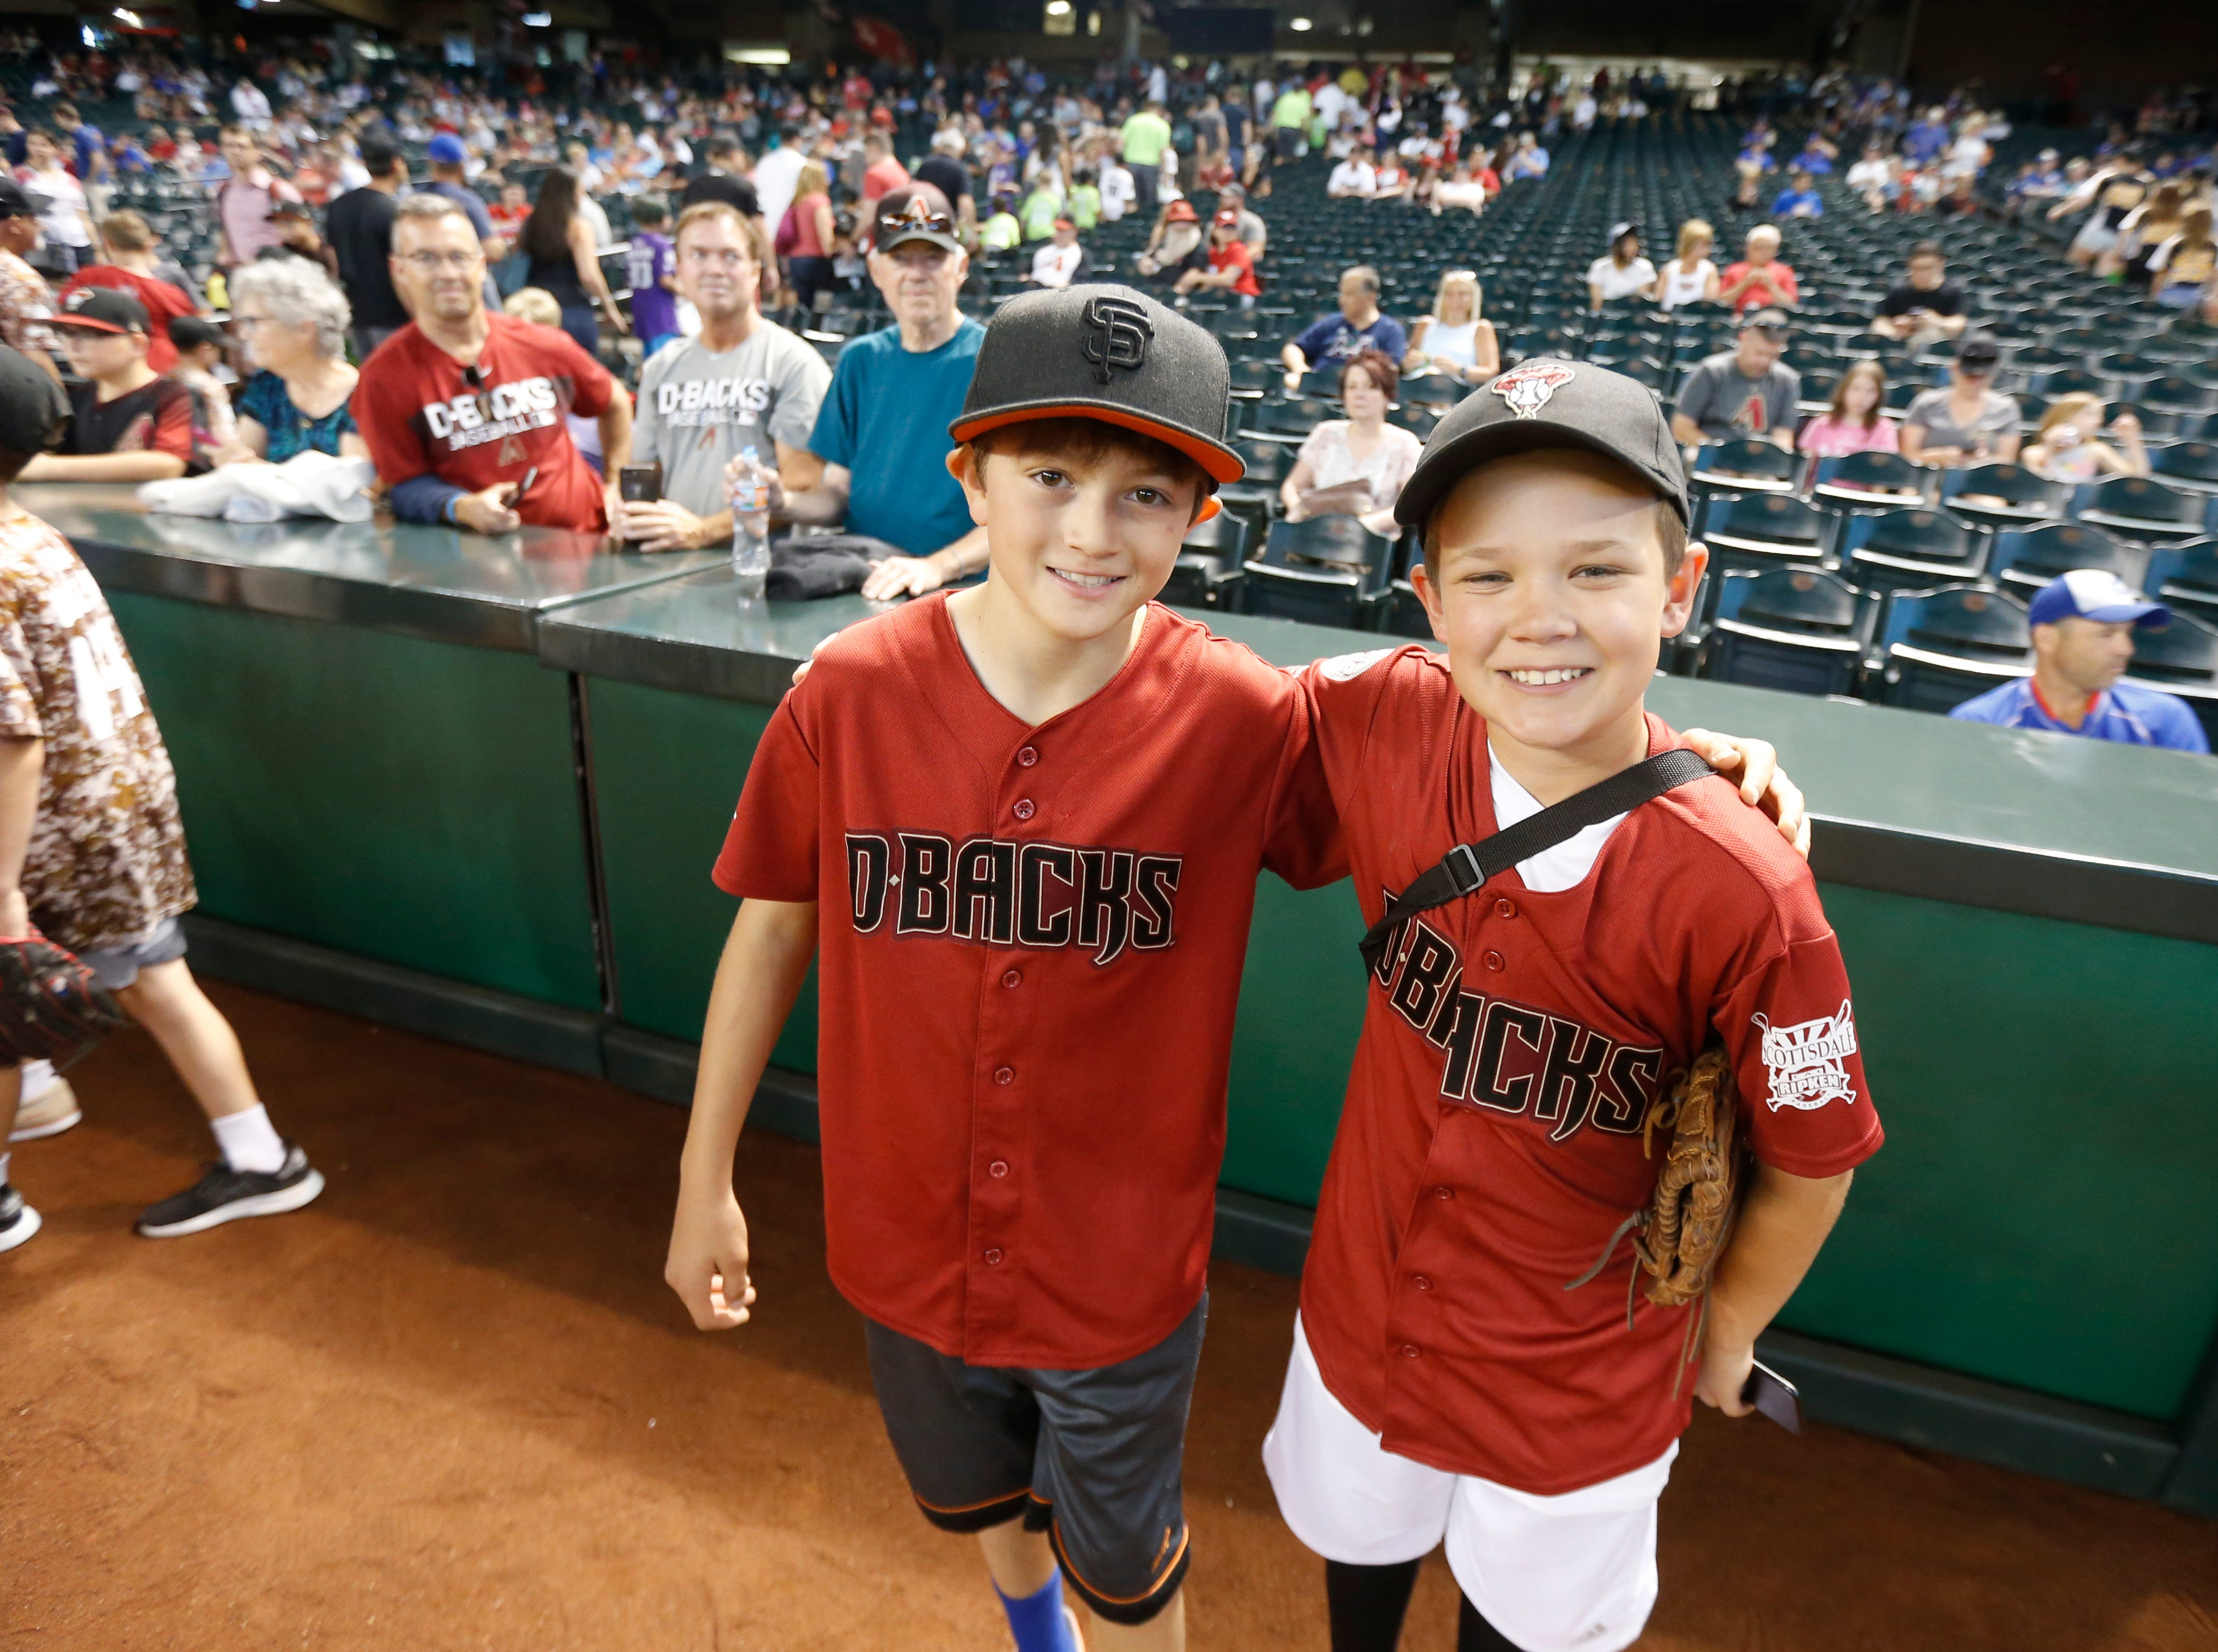 Young Diamondback fans pose for a picture during the Arizona All-Stars Parade before a Cubs vs. Diamondbacks game at Chase Field in Phoenix, Ariz. on April 26, 2019.